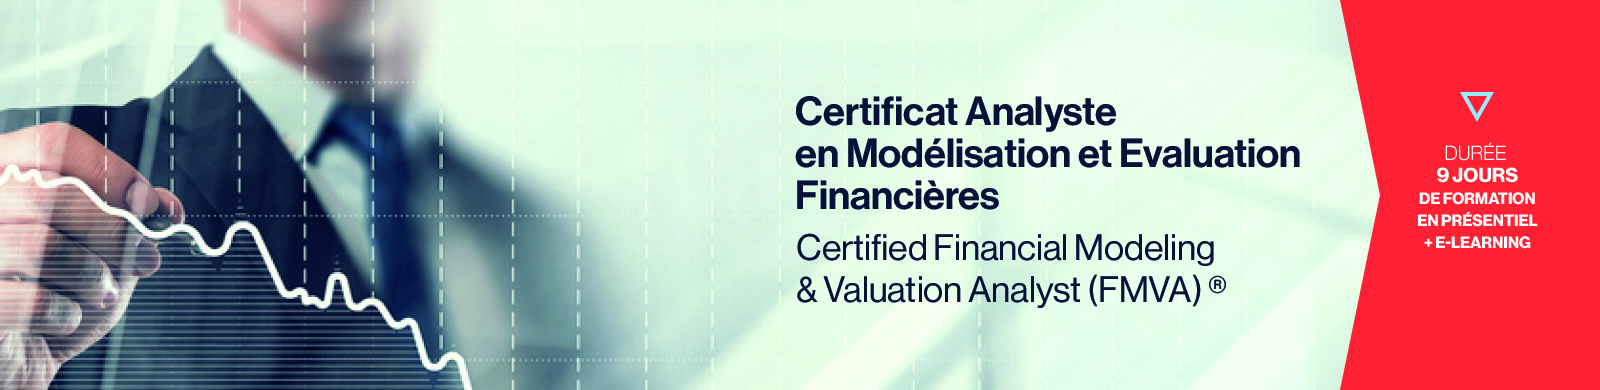 CERTIFICAT ANALYSTE EN MOD2LISATION FINANCIERE EN EVALUATION